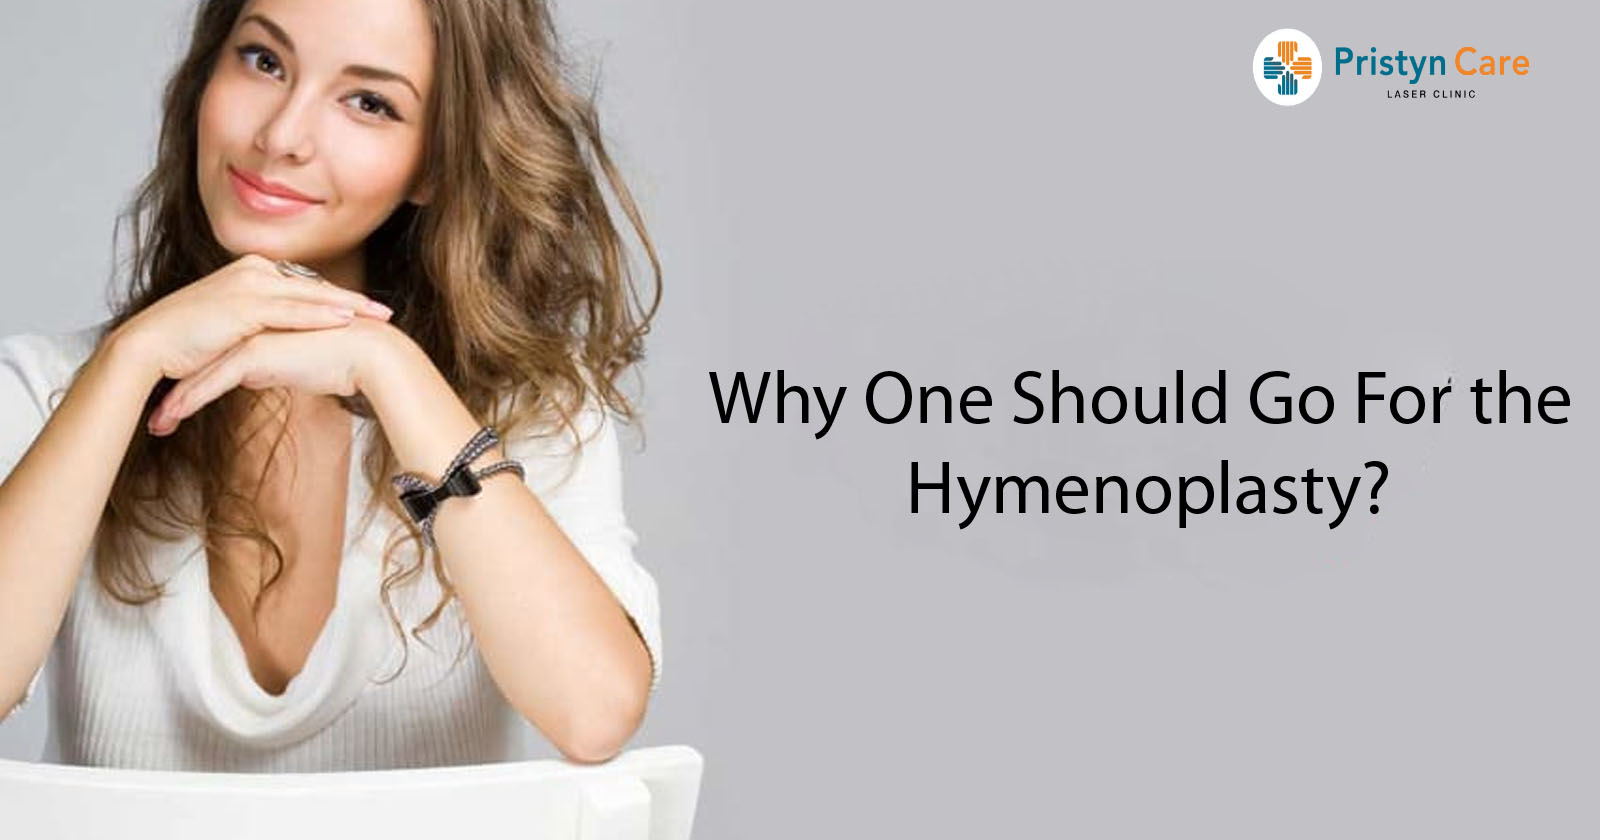 Why One Should Go For the Hymenoplasty?